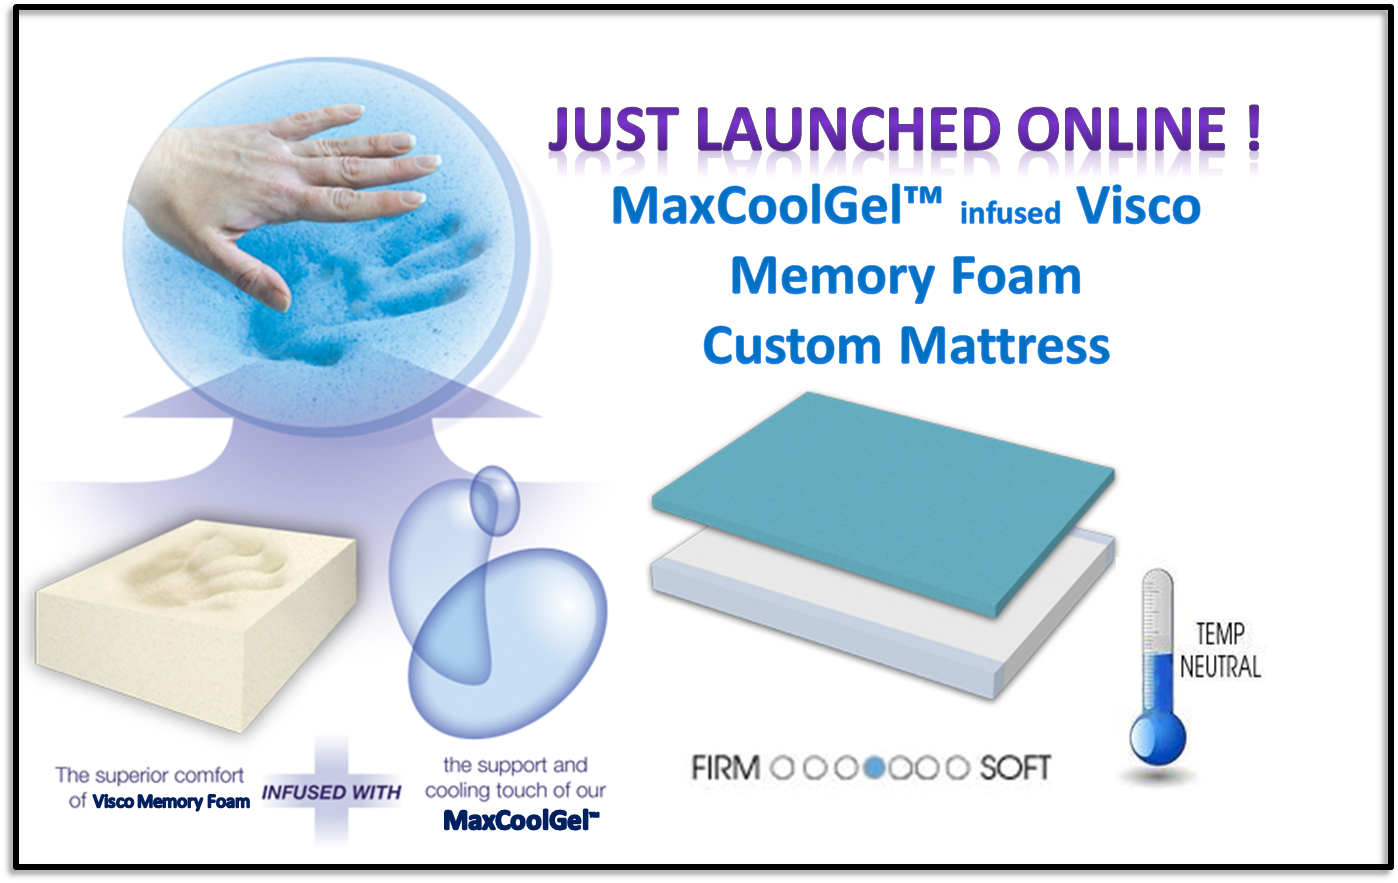 NEW! MaxCoolGel Visco Memory Foam Custom Mattress